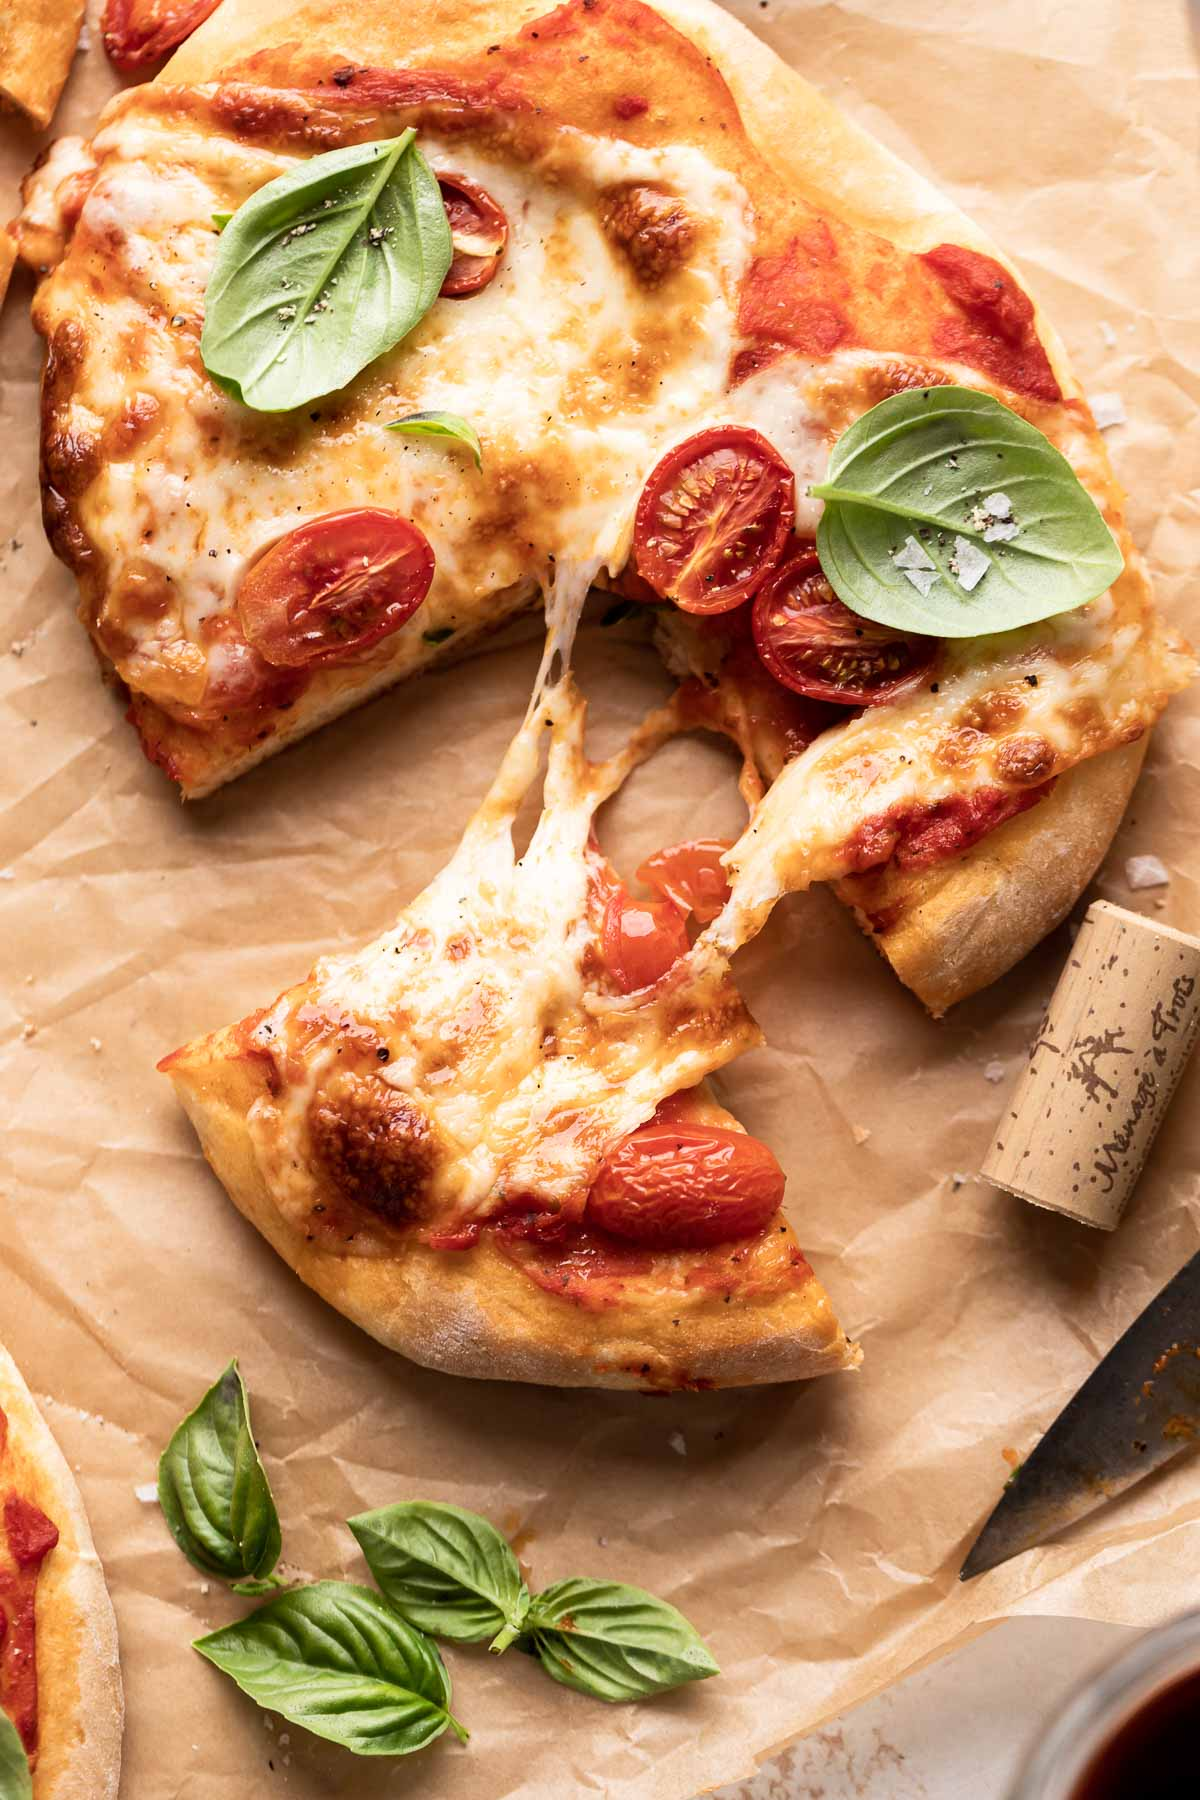 chewy pizza dough slice being pulled from the pizza.